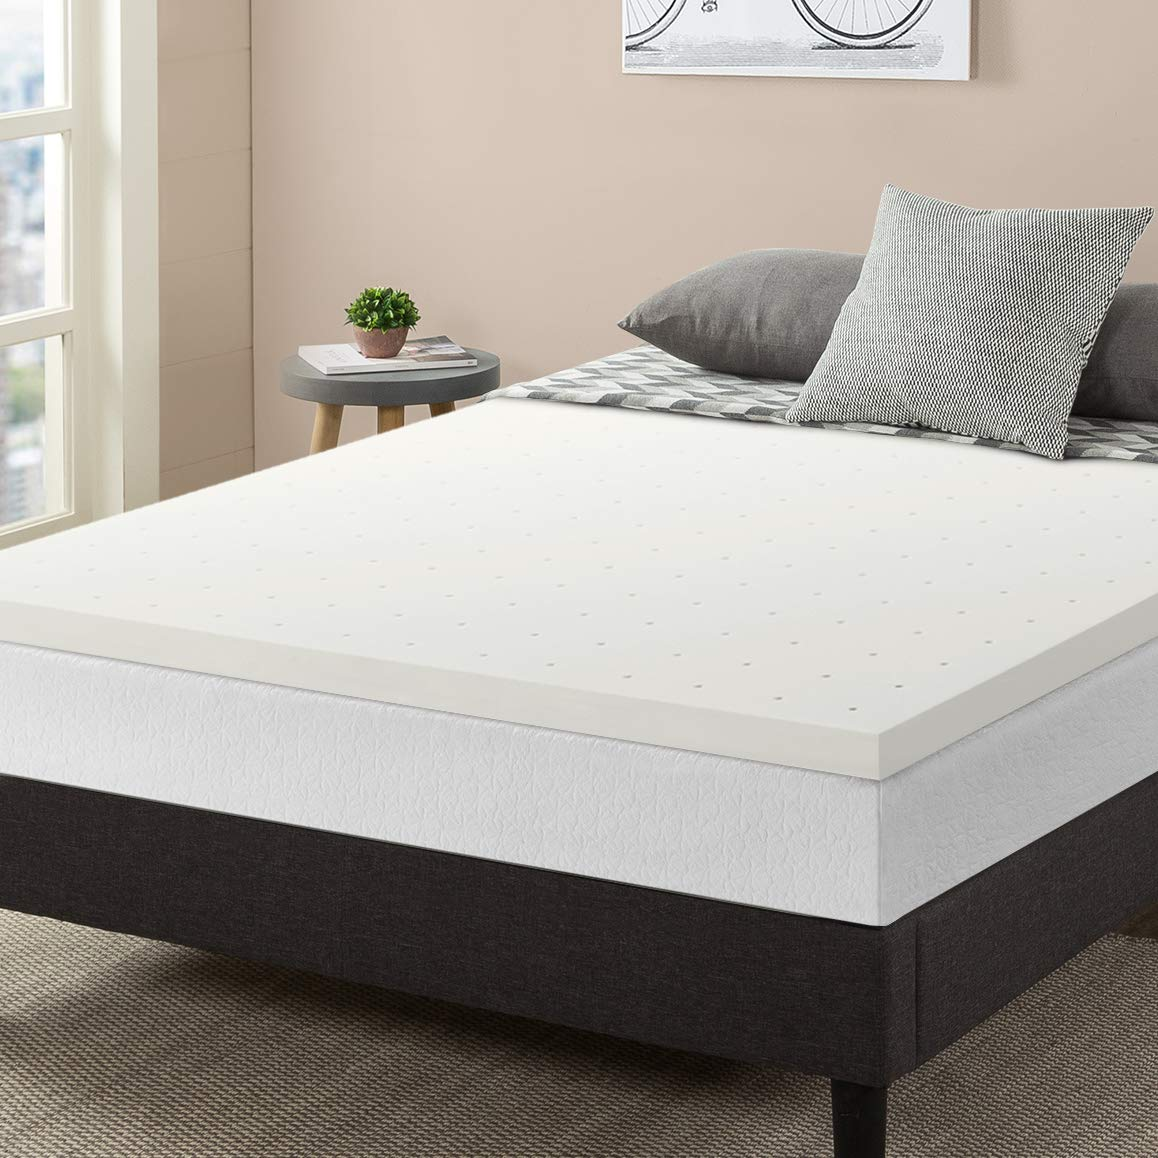 Best Price Mattress, 2.5 Inch Ventilated Memory Foam Mattress Topper, Certipur-US Certified, Twin Extra Long Size by Best Price Mattress